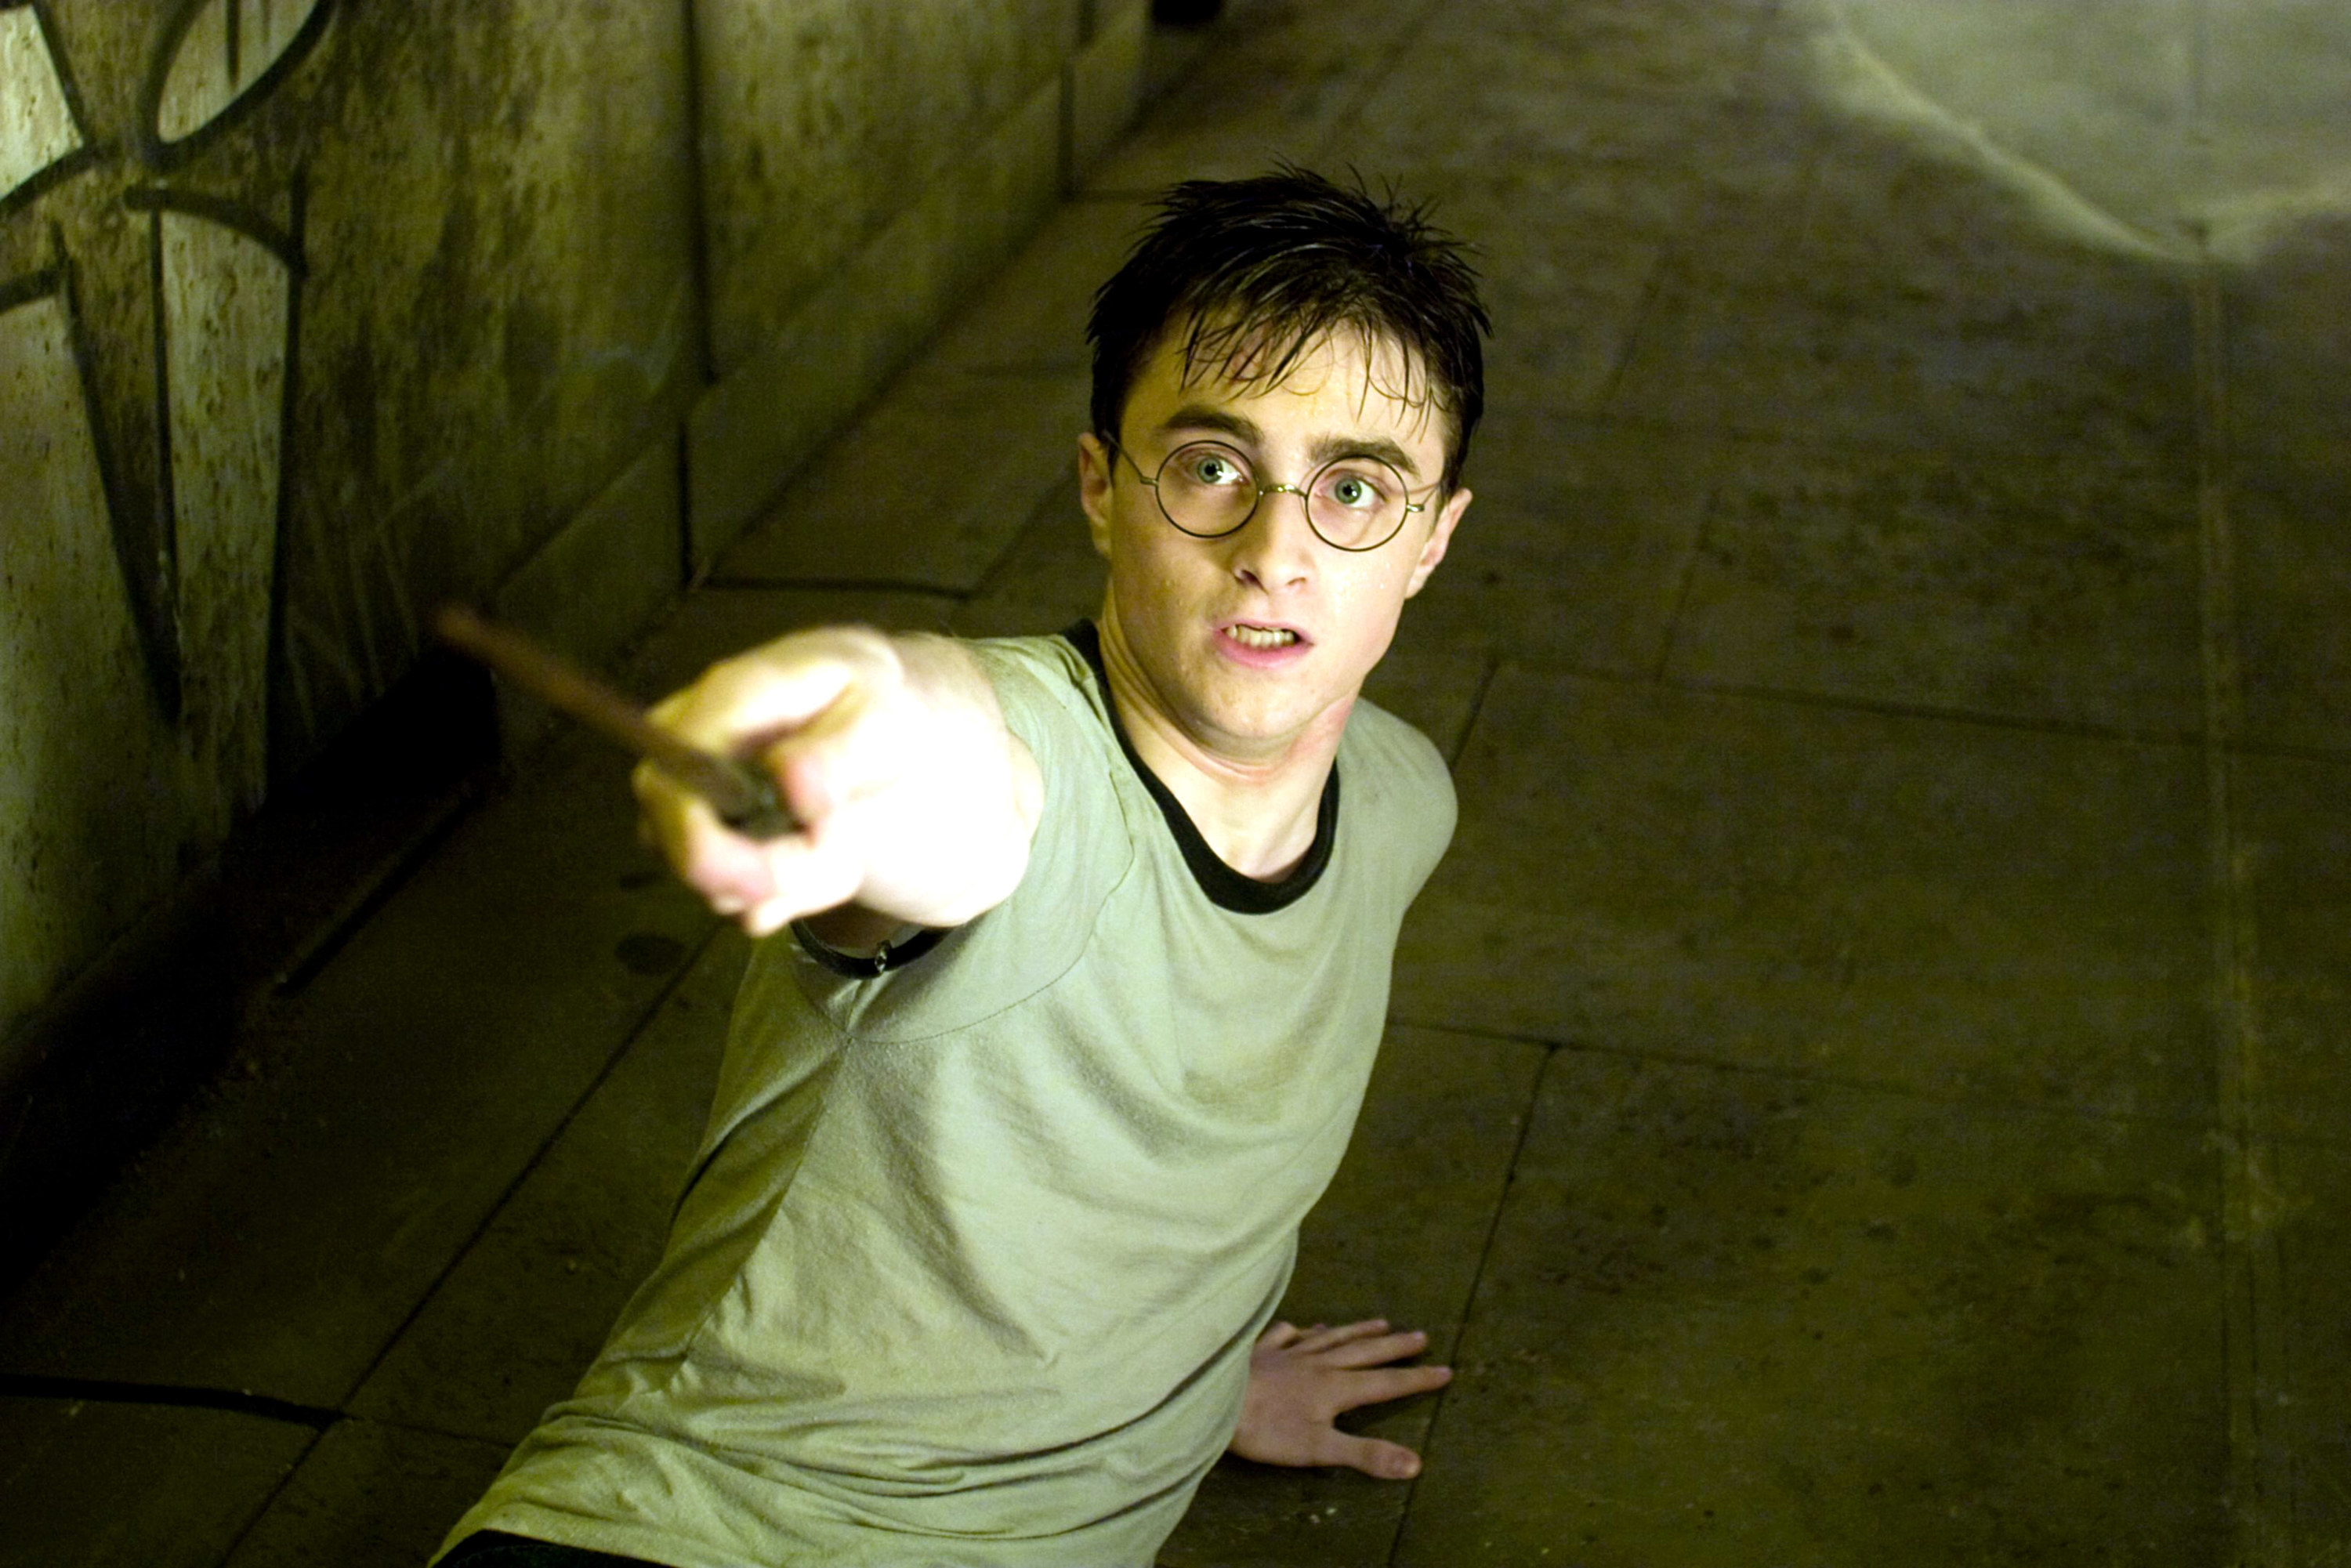 Photo of Harry Potter on the ground looking scared and pointing his wand